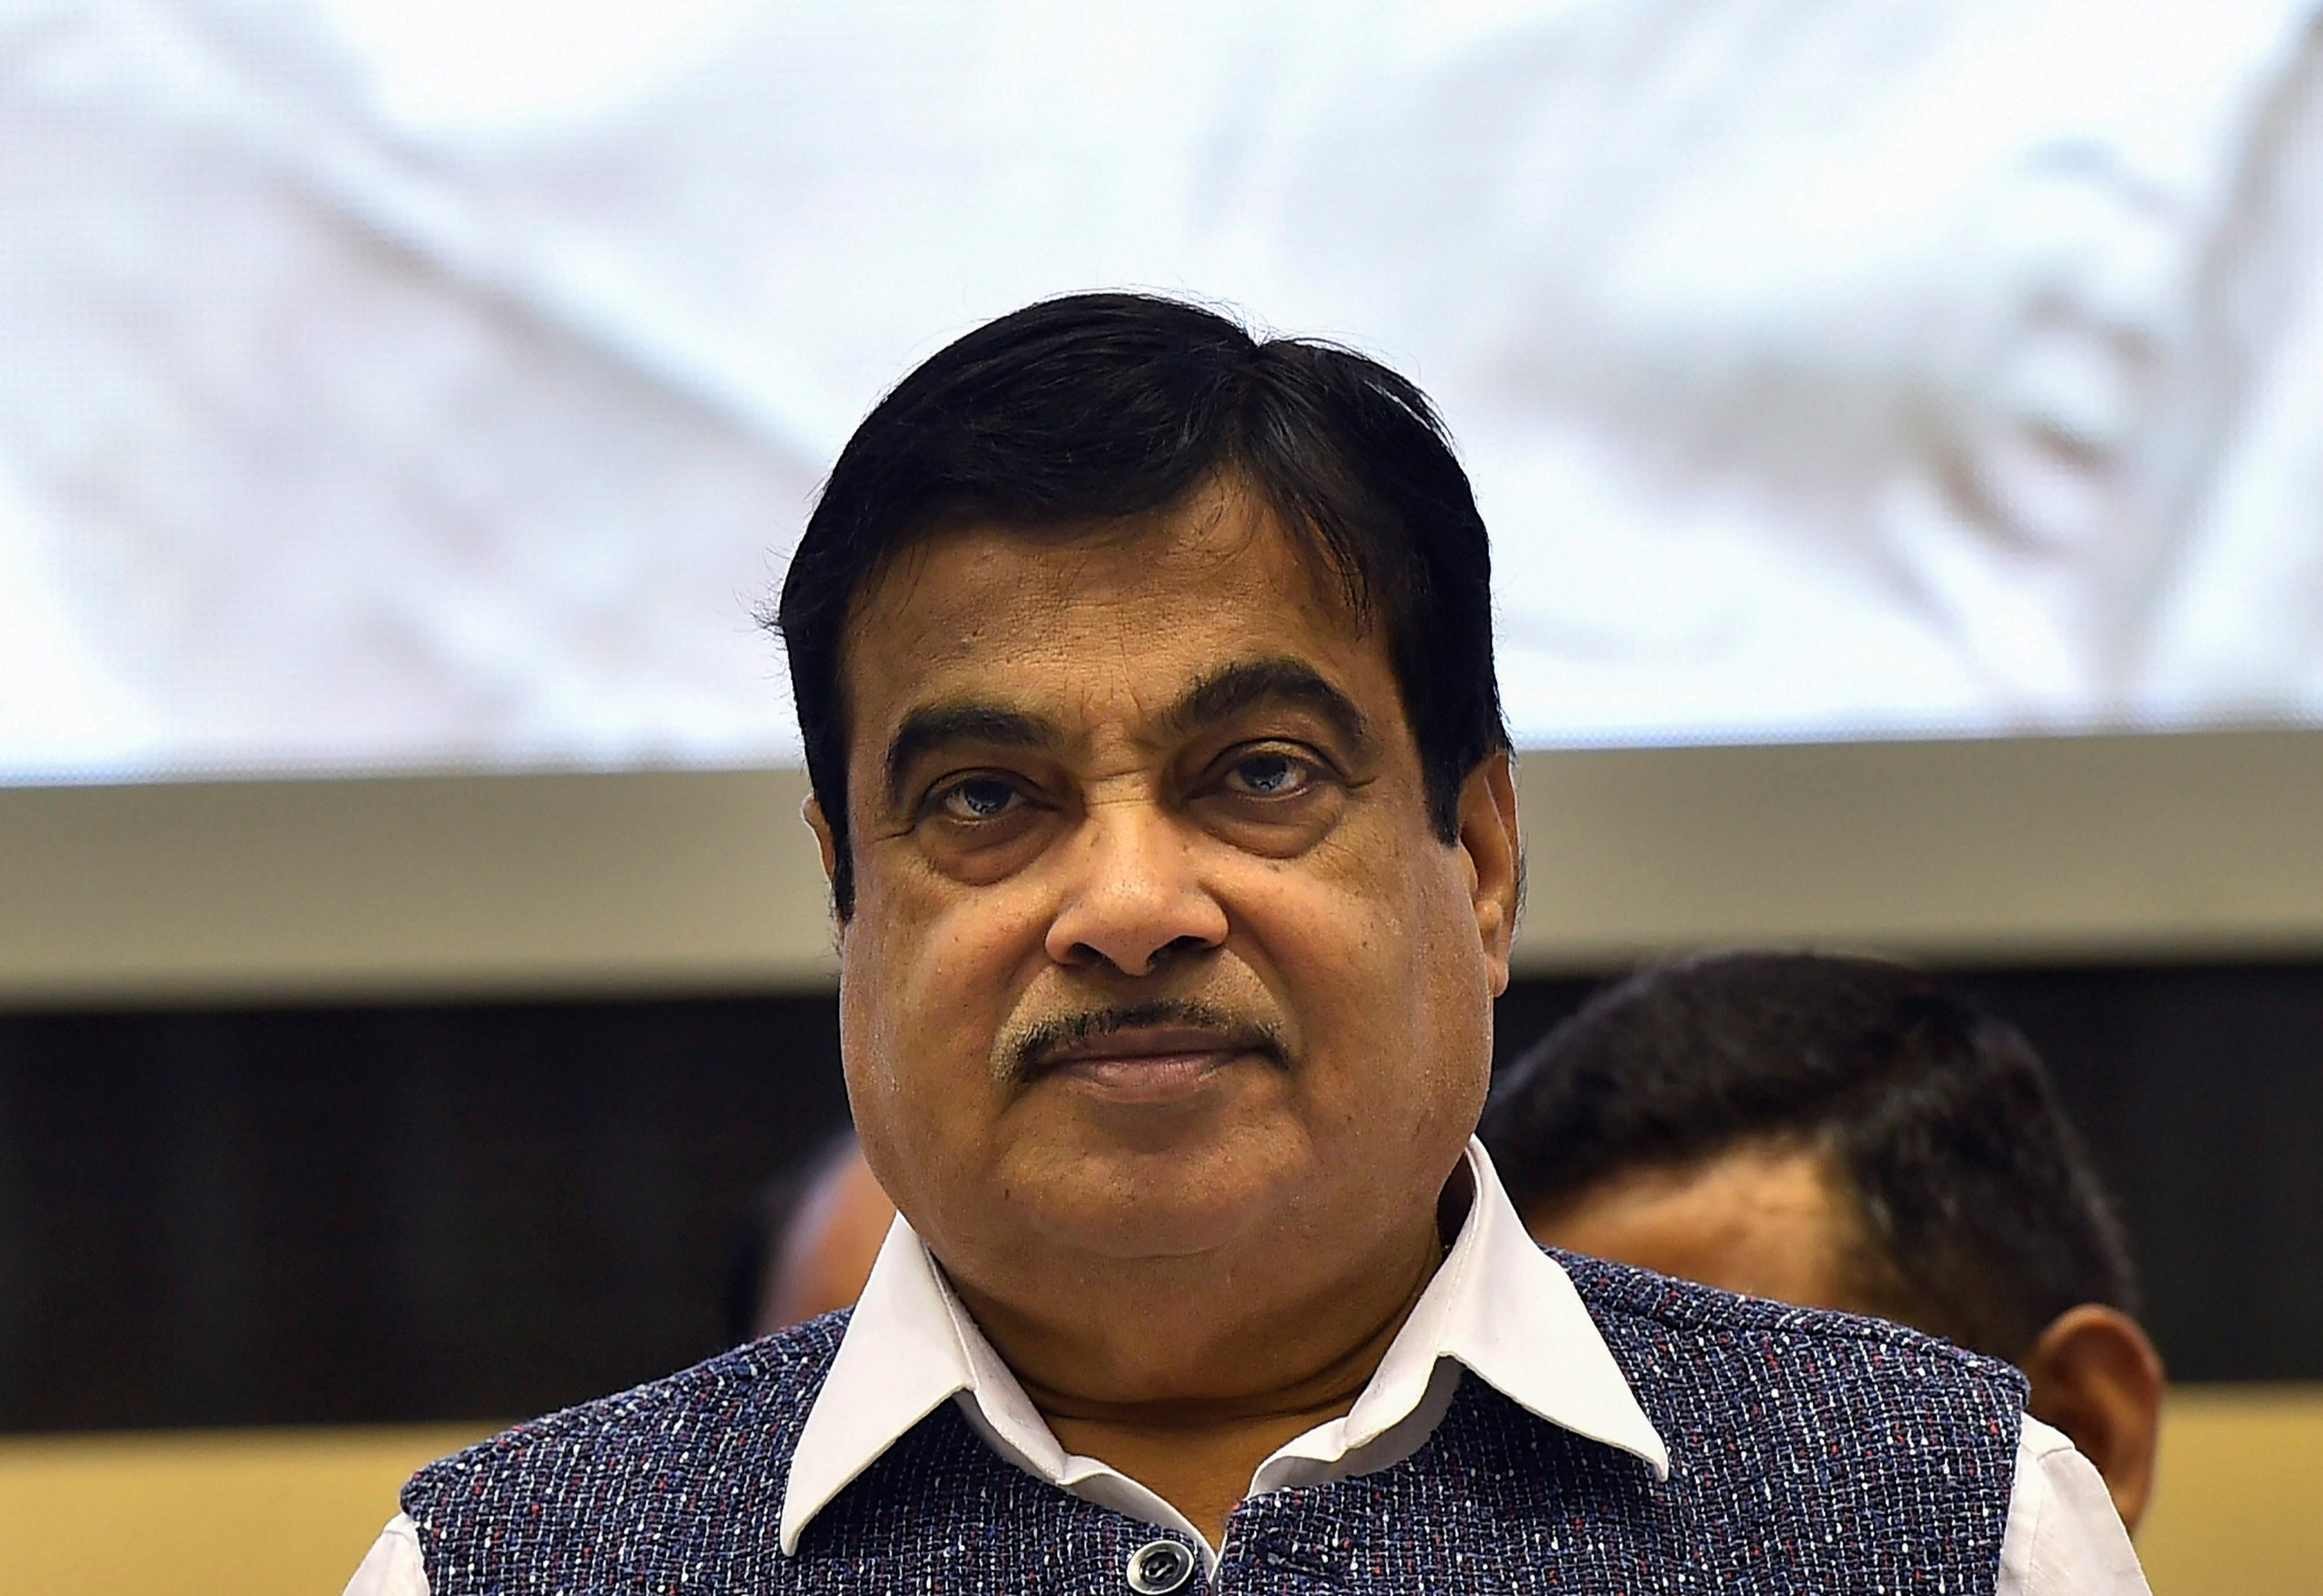 New Delhi: Union Minister for Road Transport and Highways Nitin Gadkari releases a book during inauguration of the 29th National Road Safety Week 2018 in New Delhi on Monday. PTI Photo by Kamal Singh (PTI4_23_2018_000031B)